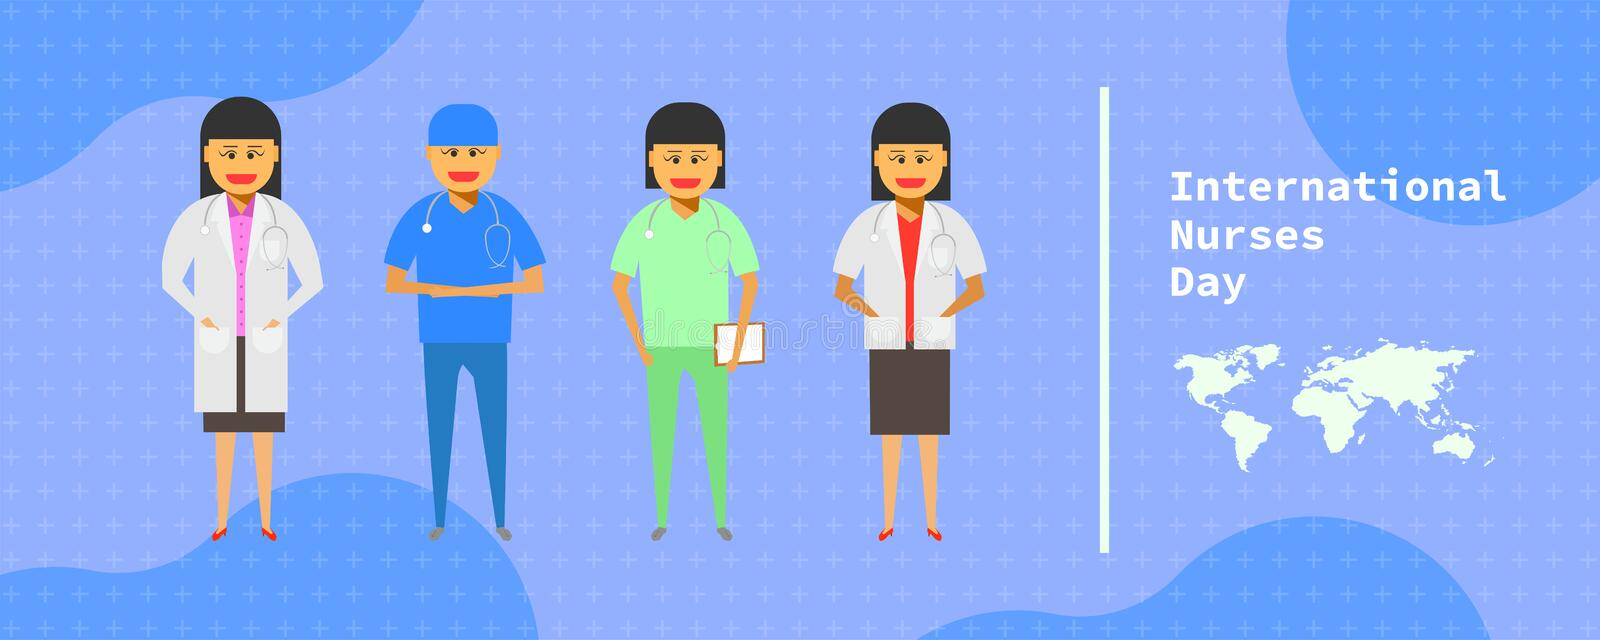 12 may. international nurses day. female doctor group standing on abstract background. vector illustration ep10. 12 may. international nurses day. female doctor stock illustration